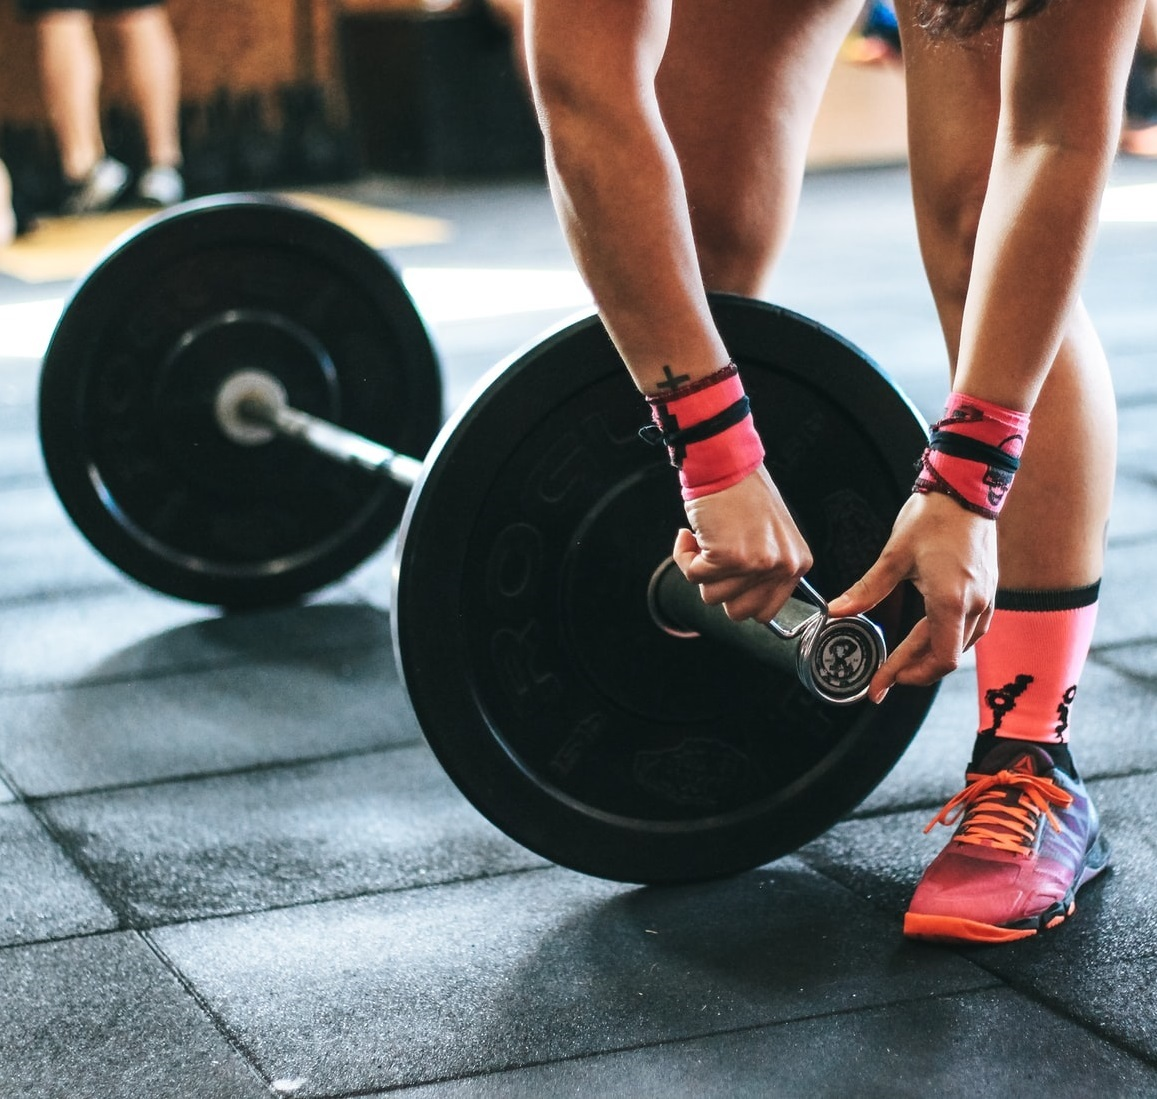 Crossfit Chica 1